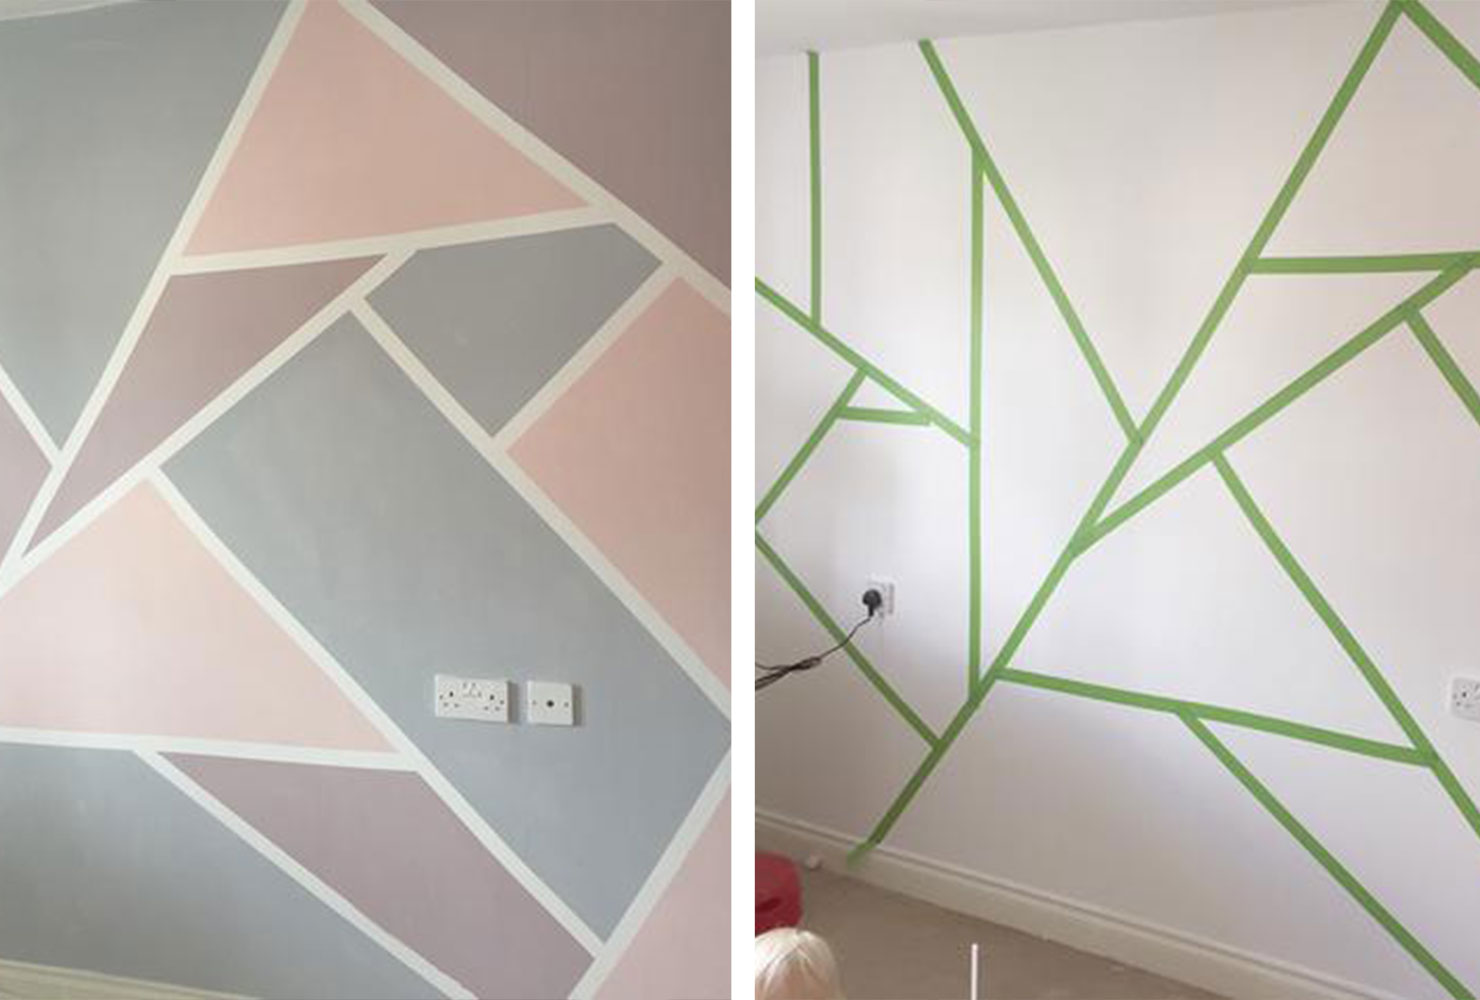 Diy Room Decor Ideas To Decorate Your Home 3 My Swag